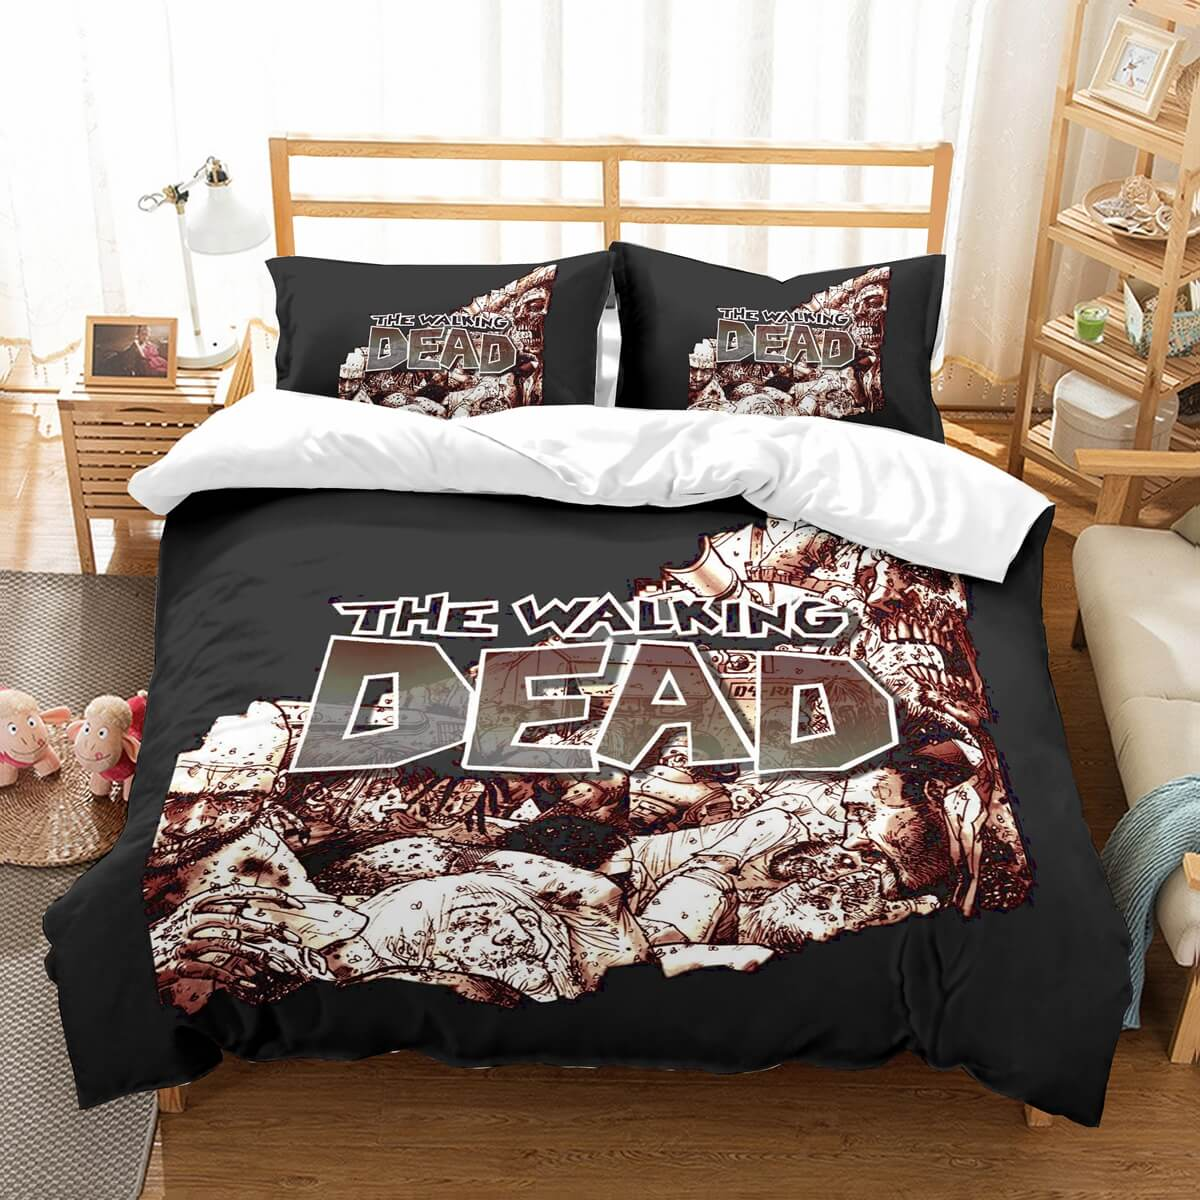 3D Customize Walking Dead Bedding Set Duvet Cover Set Bedroom Set Bedlinen